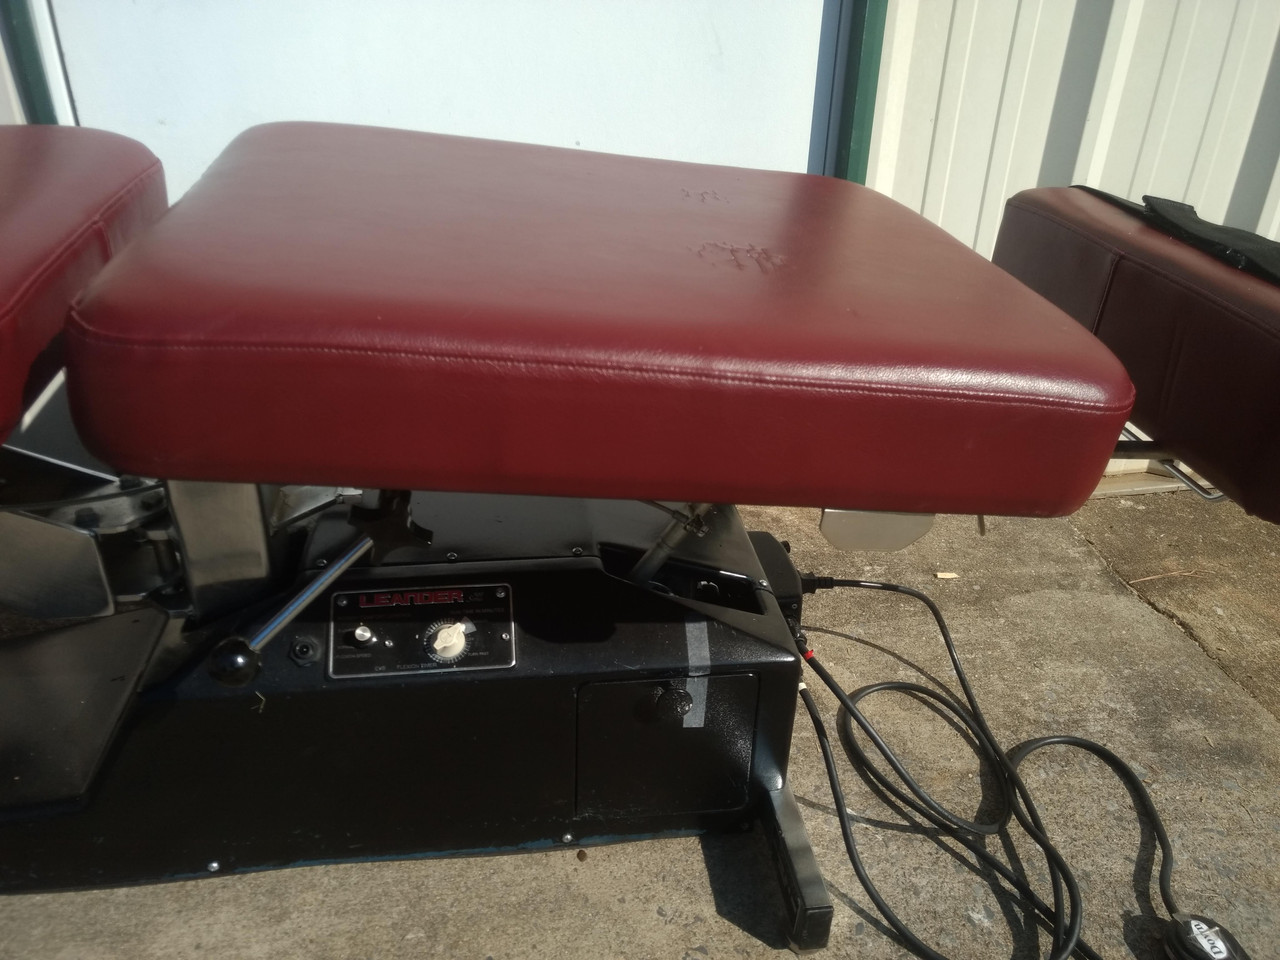 Used Leander 900 Auto Flexion Elevation Table with 3 Drops